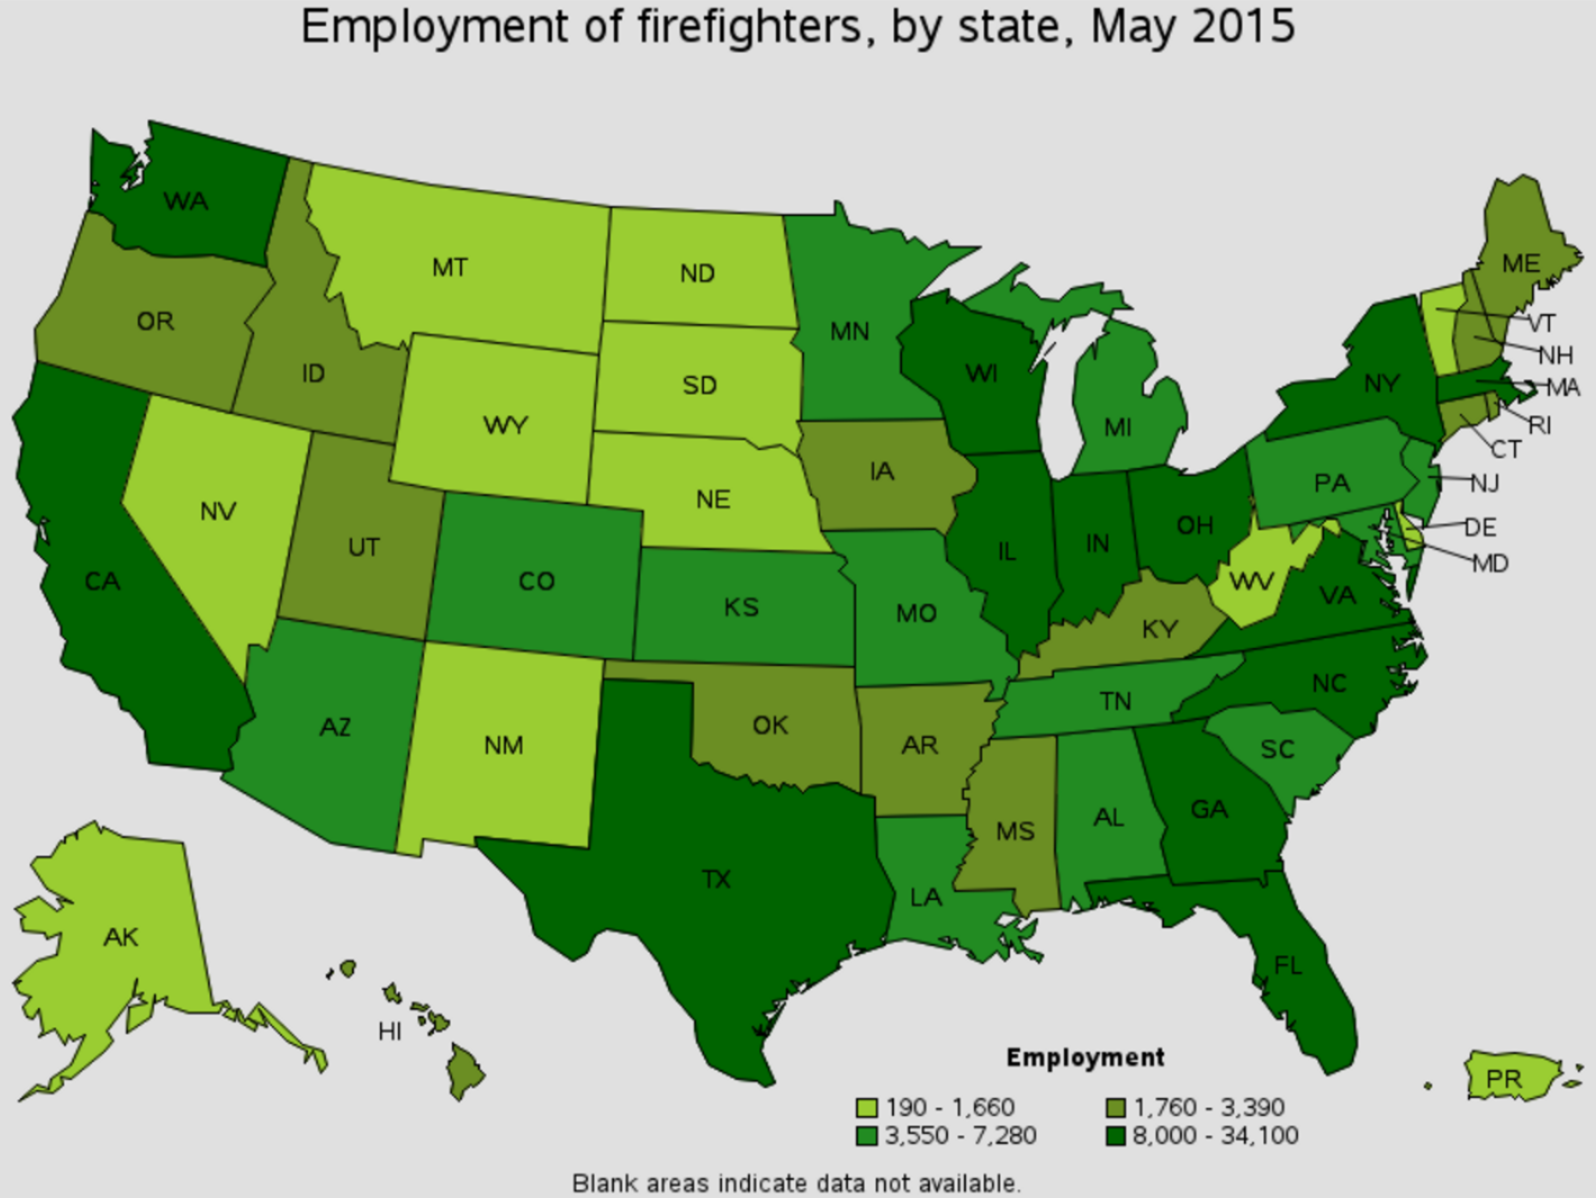 firefighter job outlook by state Salt Lake City Utah